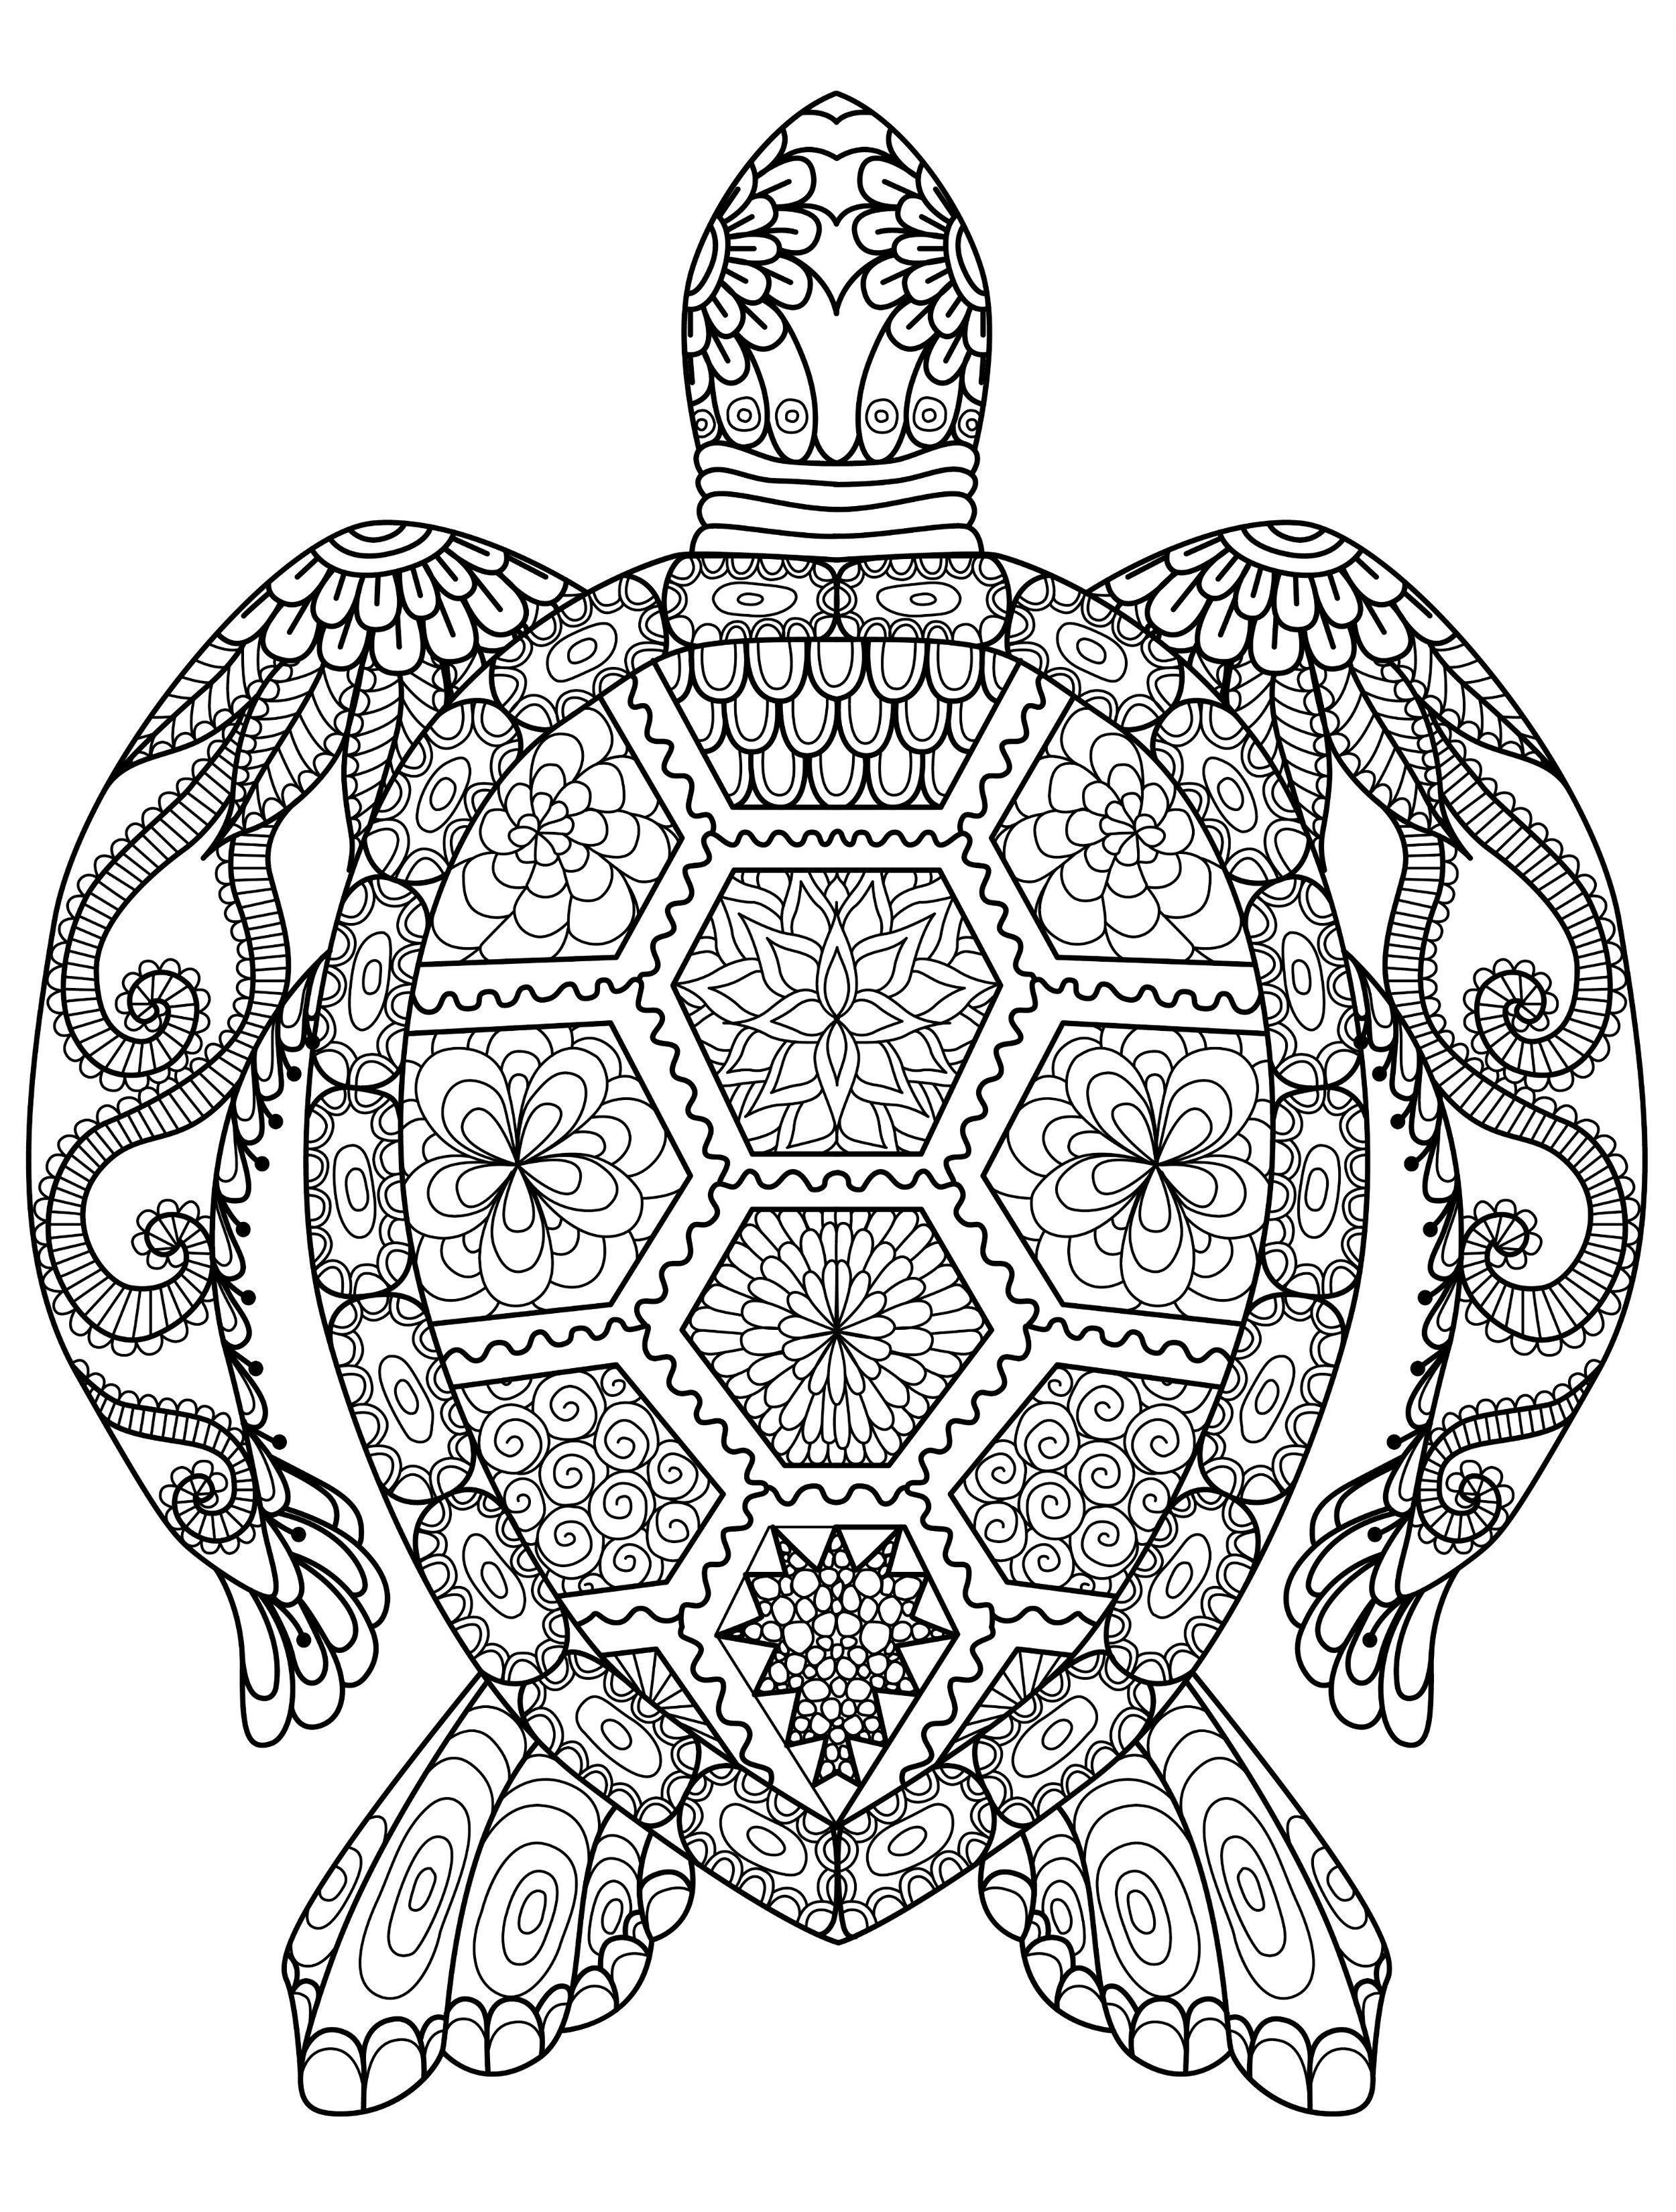 Animal Mandala Coloring Pages | Turtle coloring pages ... | printable mandala coloring pages animals